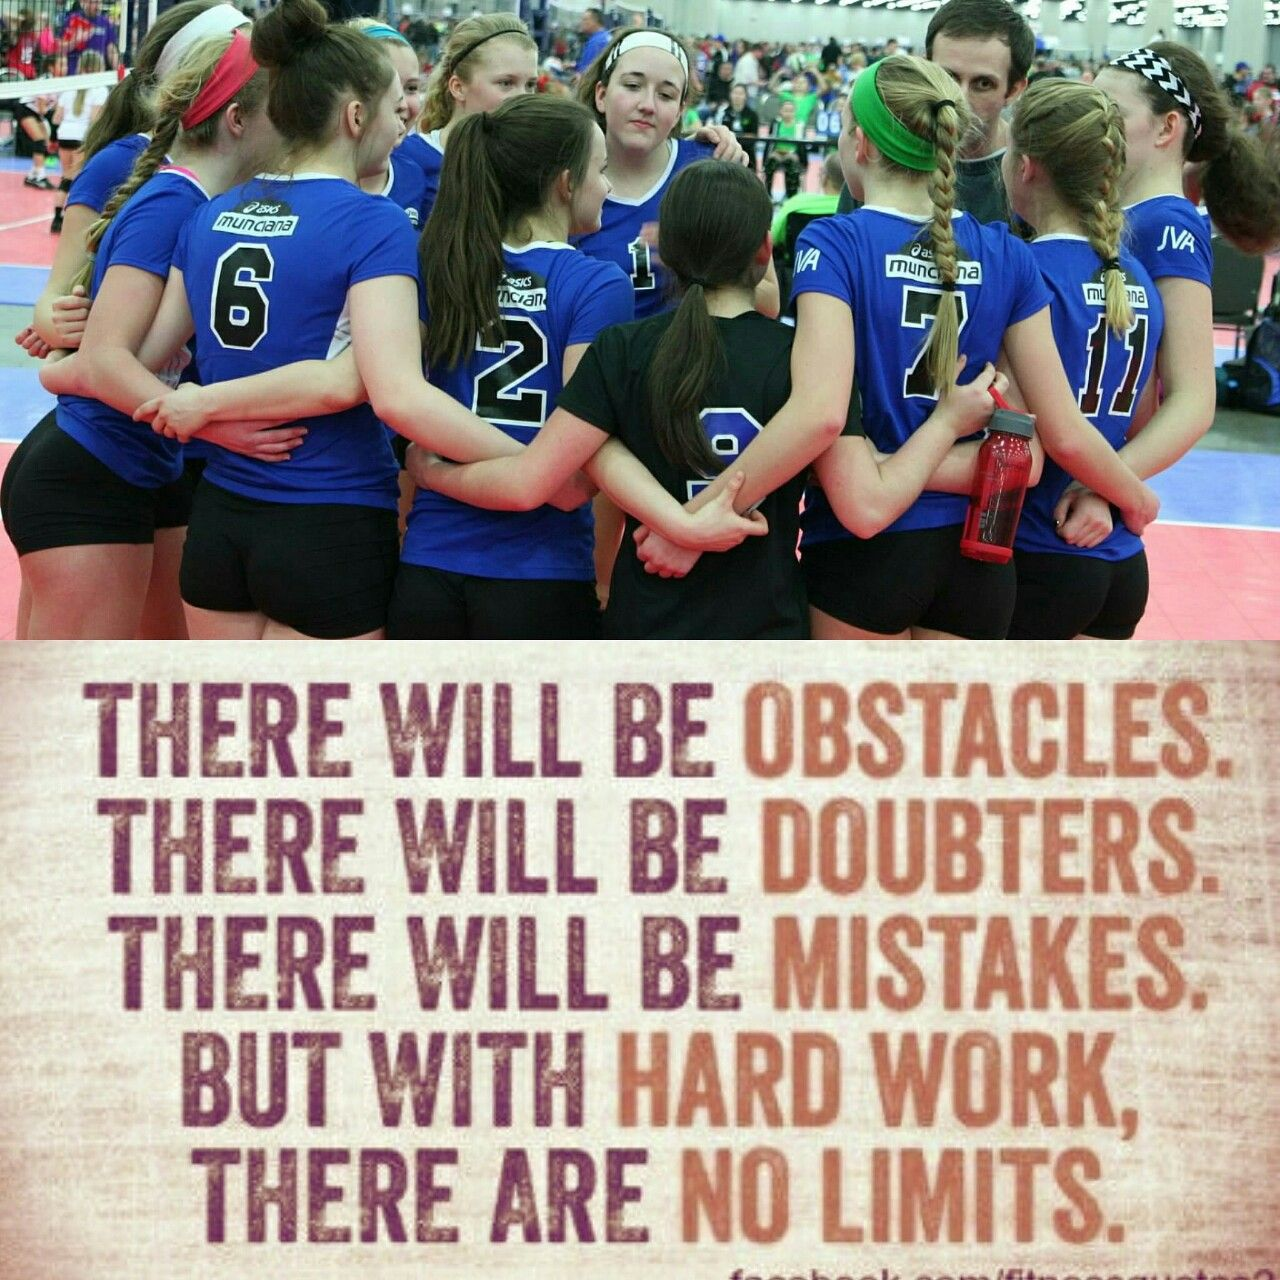 On The Countdown 2 Days Aau Volleyball Nationals Occc Orlando Fl Muncianavipers Aau Volleyball Volleyball Quotes Volleyball Inspiration